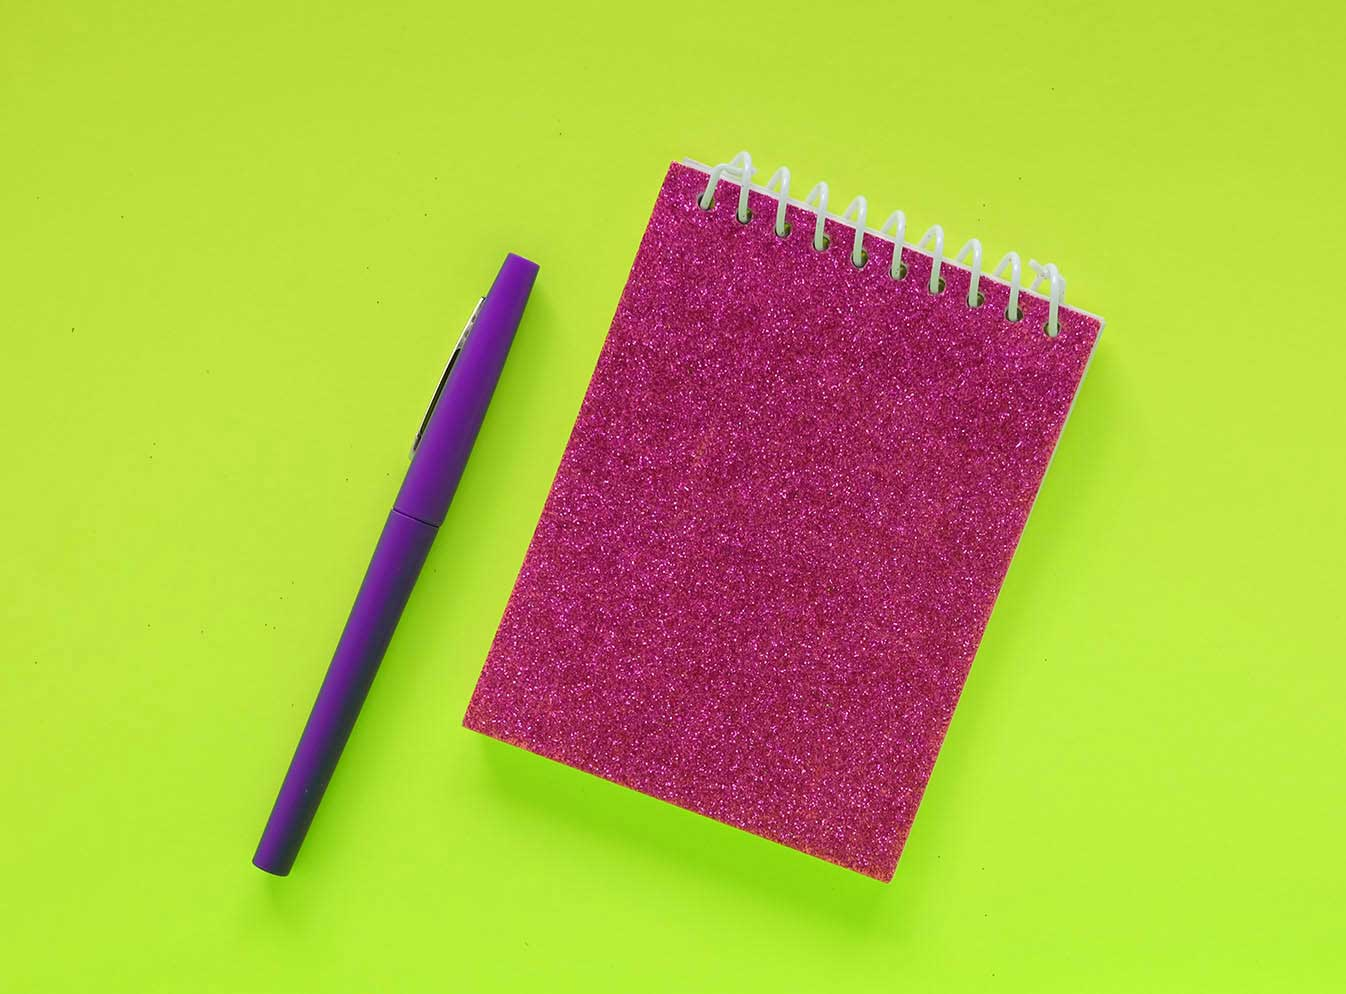 Notepad and pen on green background